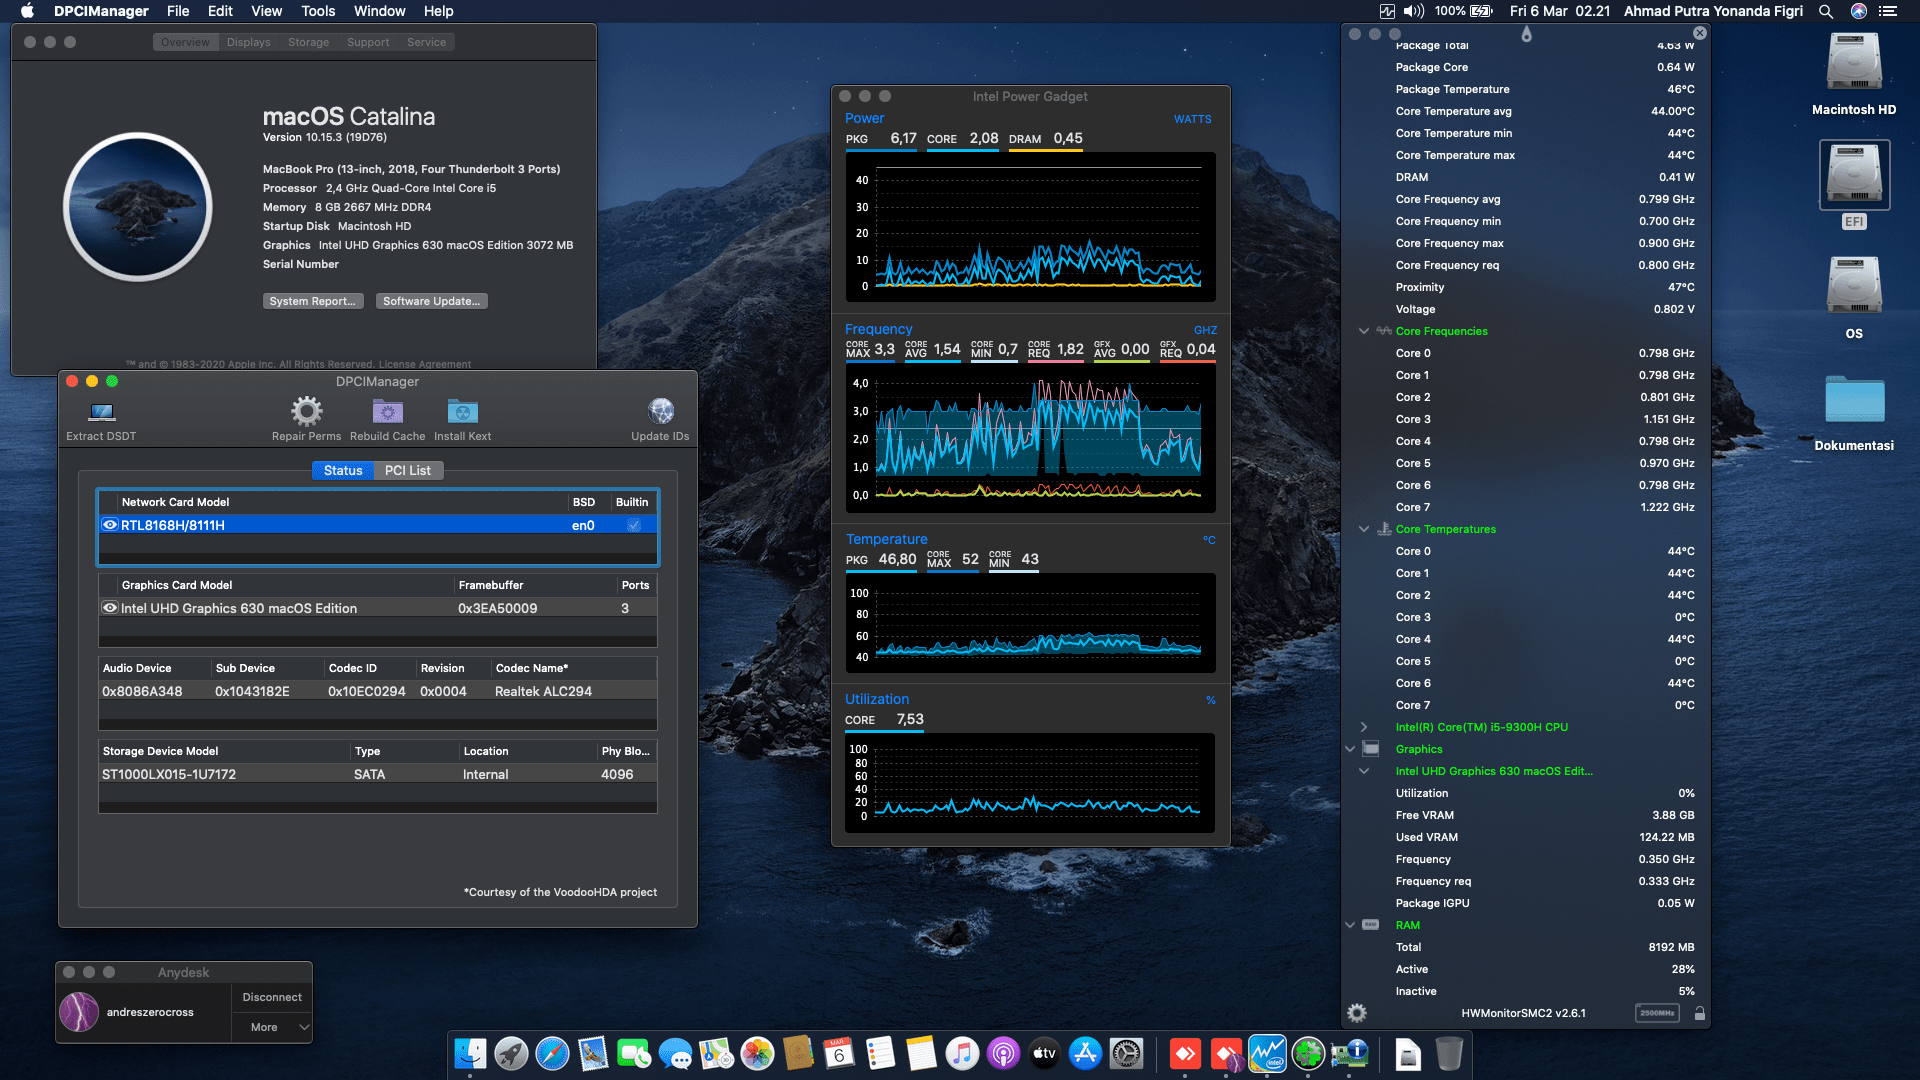 Success Hackintosh macOS Catalina 10.15.3 Build 19D76 in ASUS ROG Strix III G531GD-I505G1T